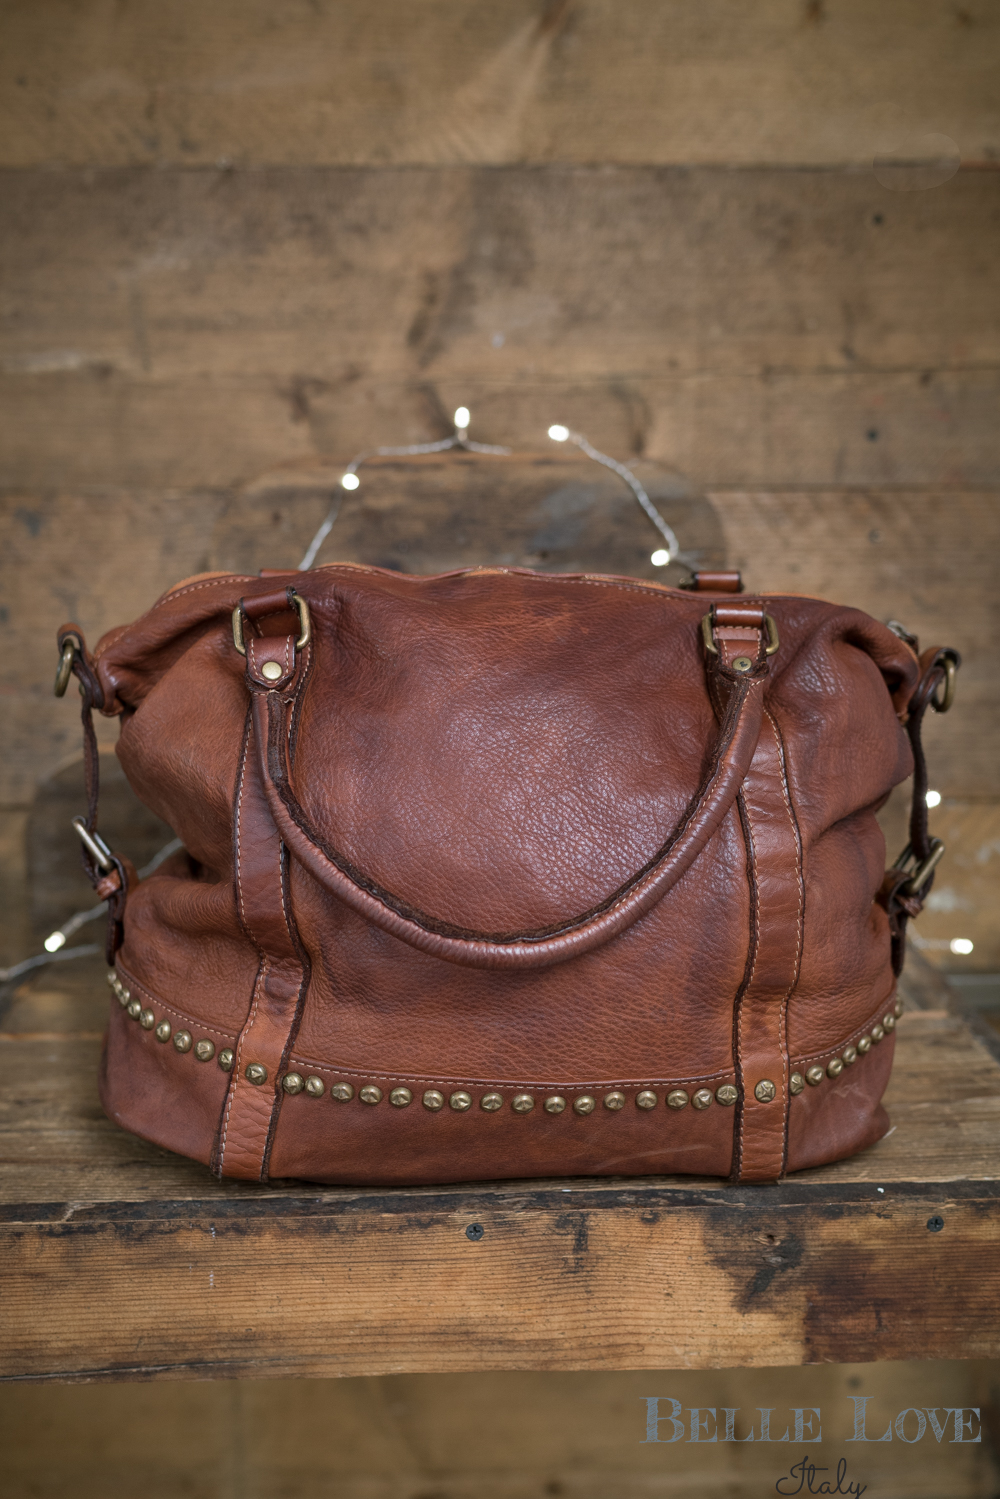 Belle Love Italy Tanned Studded Leather Handbag